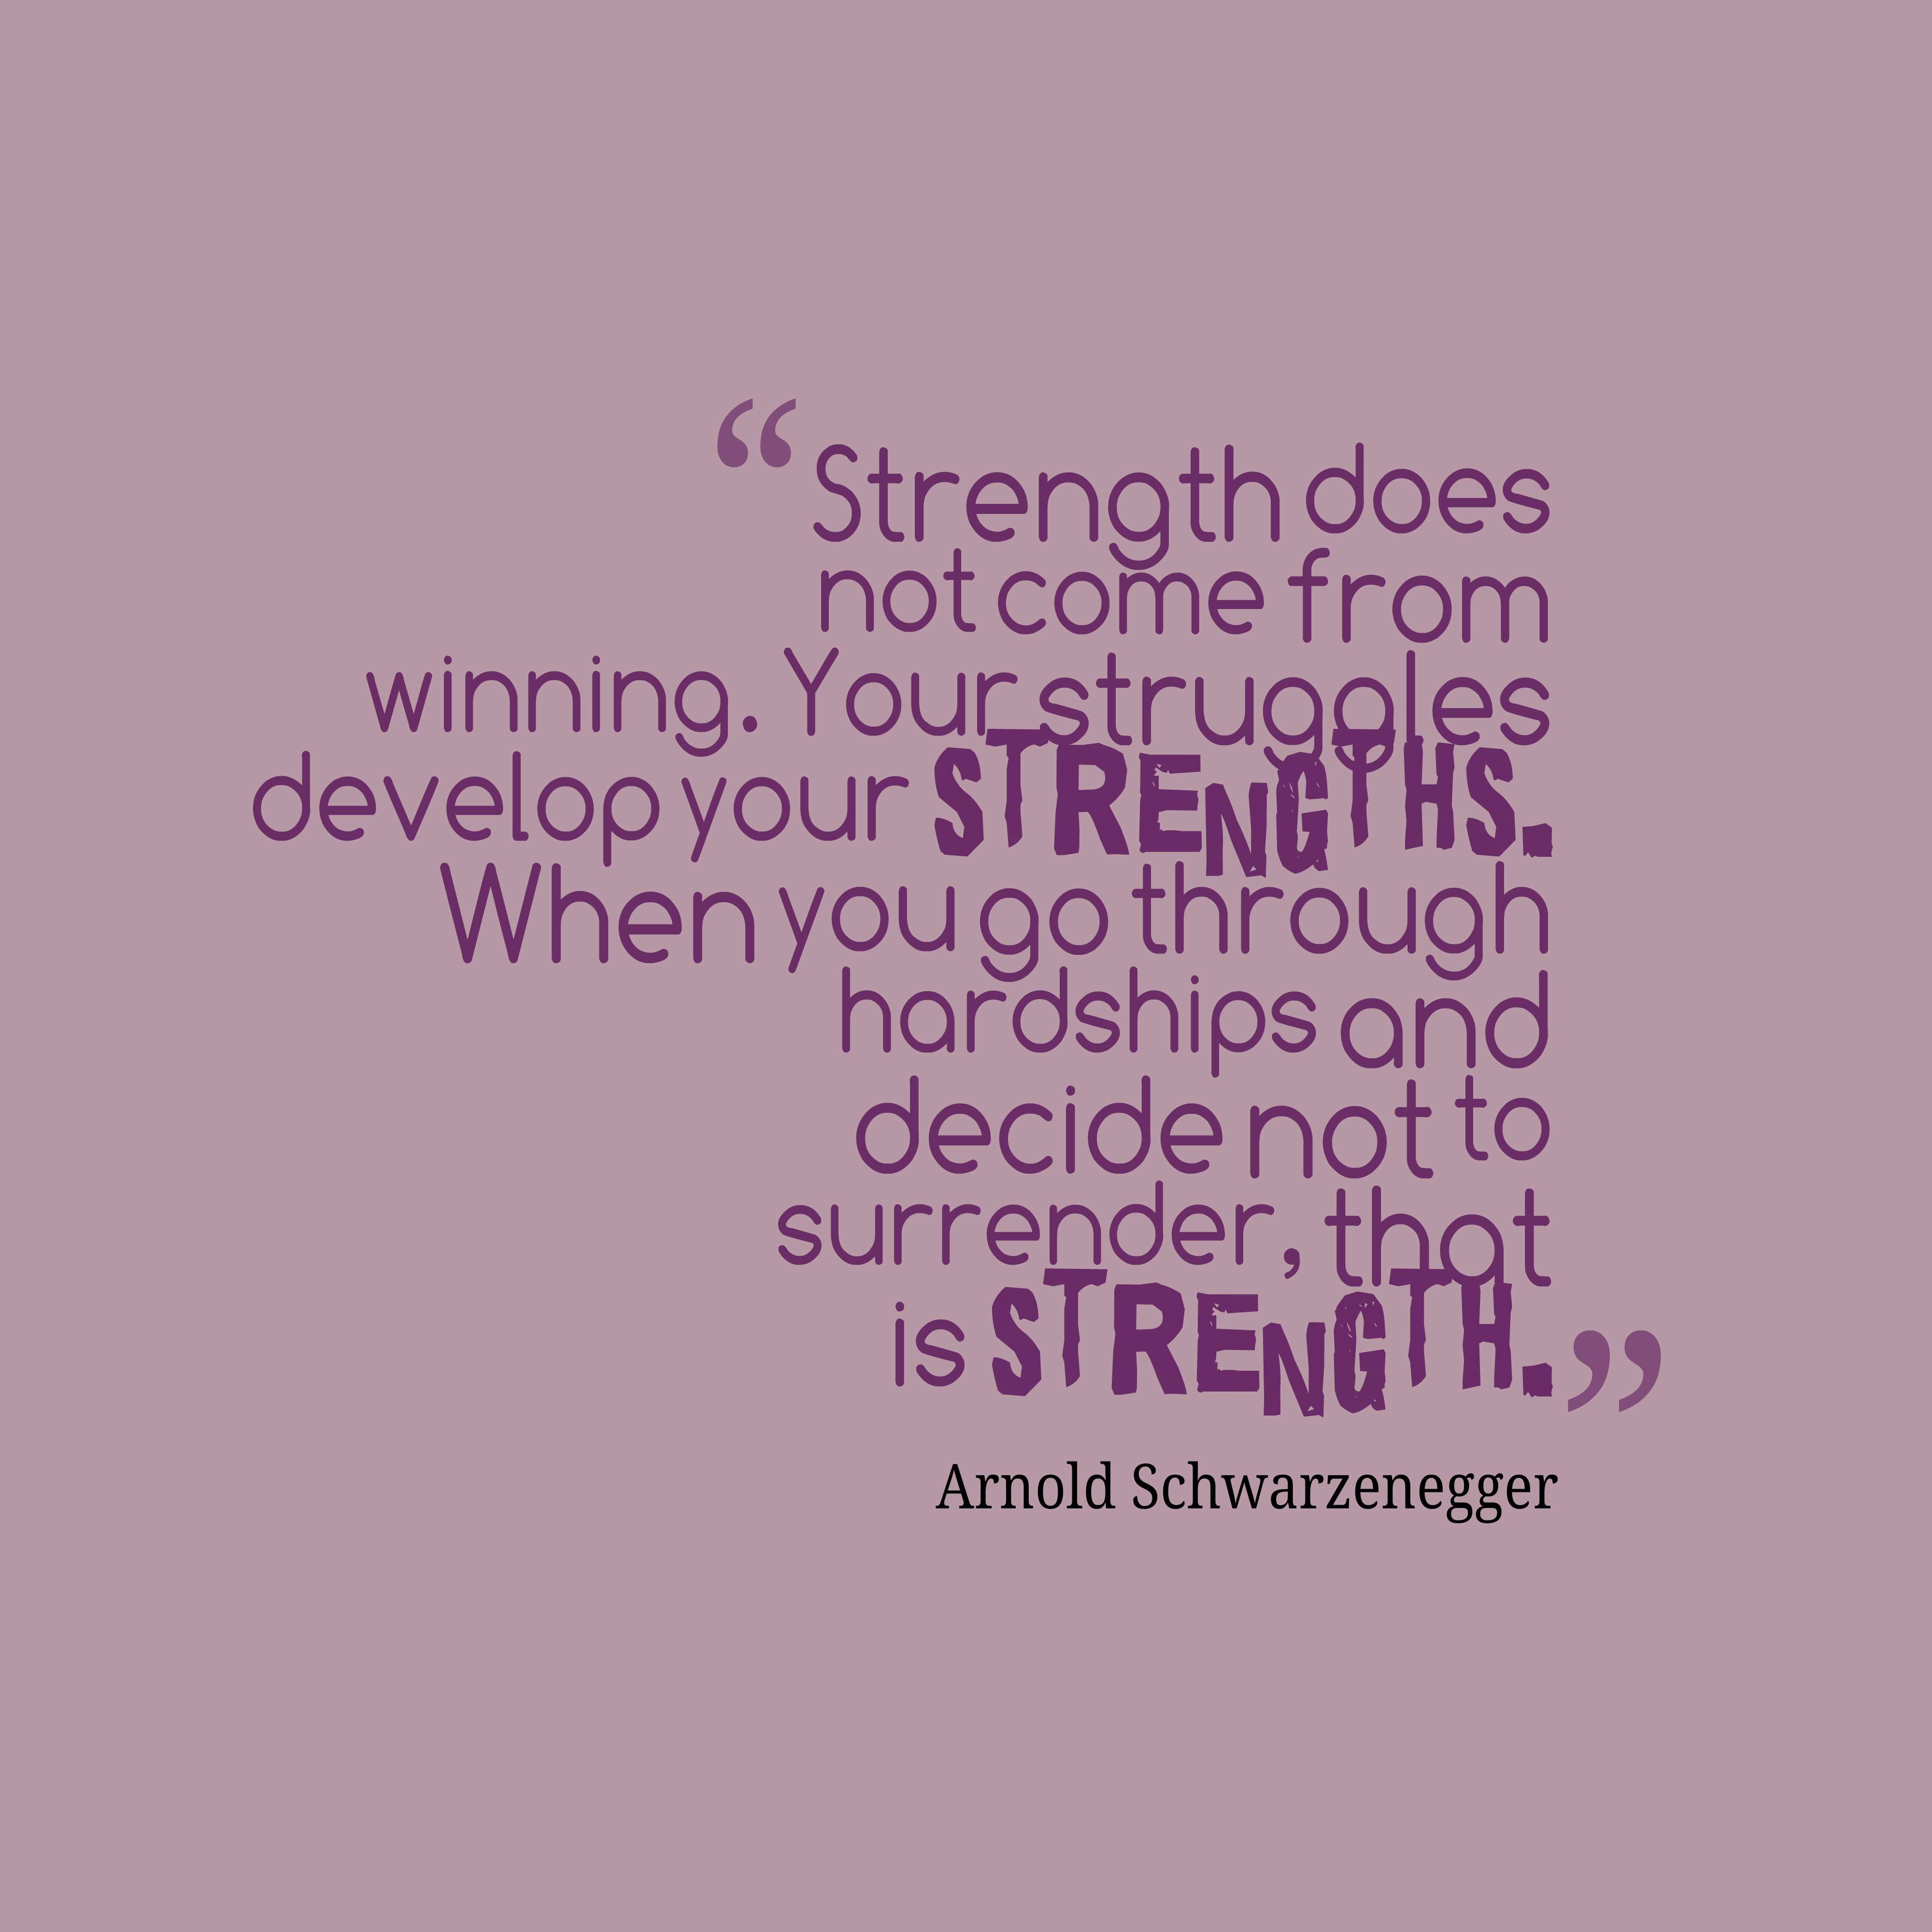 Quotes On Strength | Arnold Schwarzenegger Quote About Strength